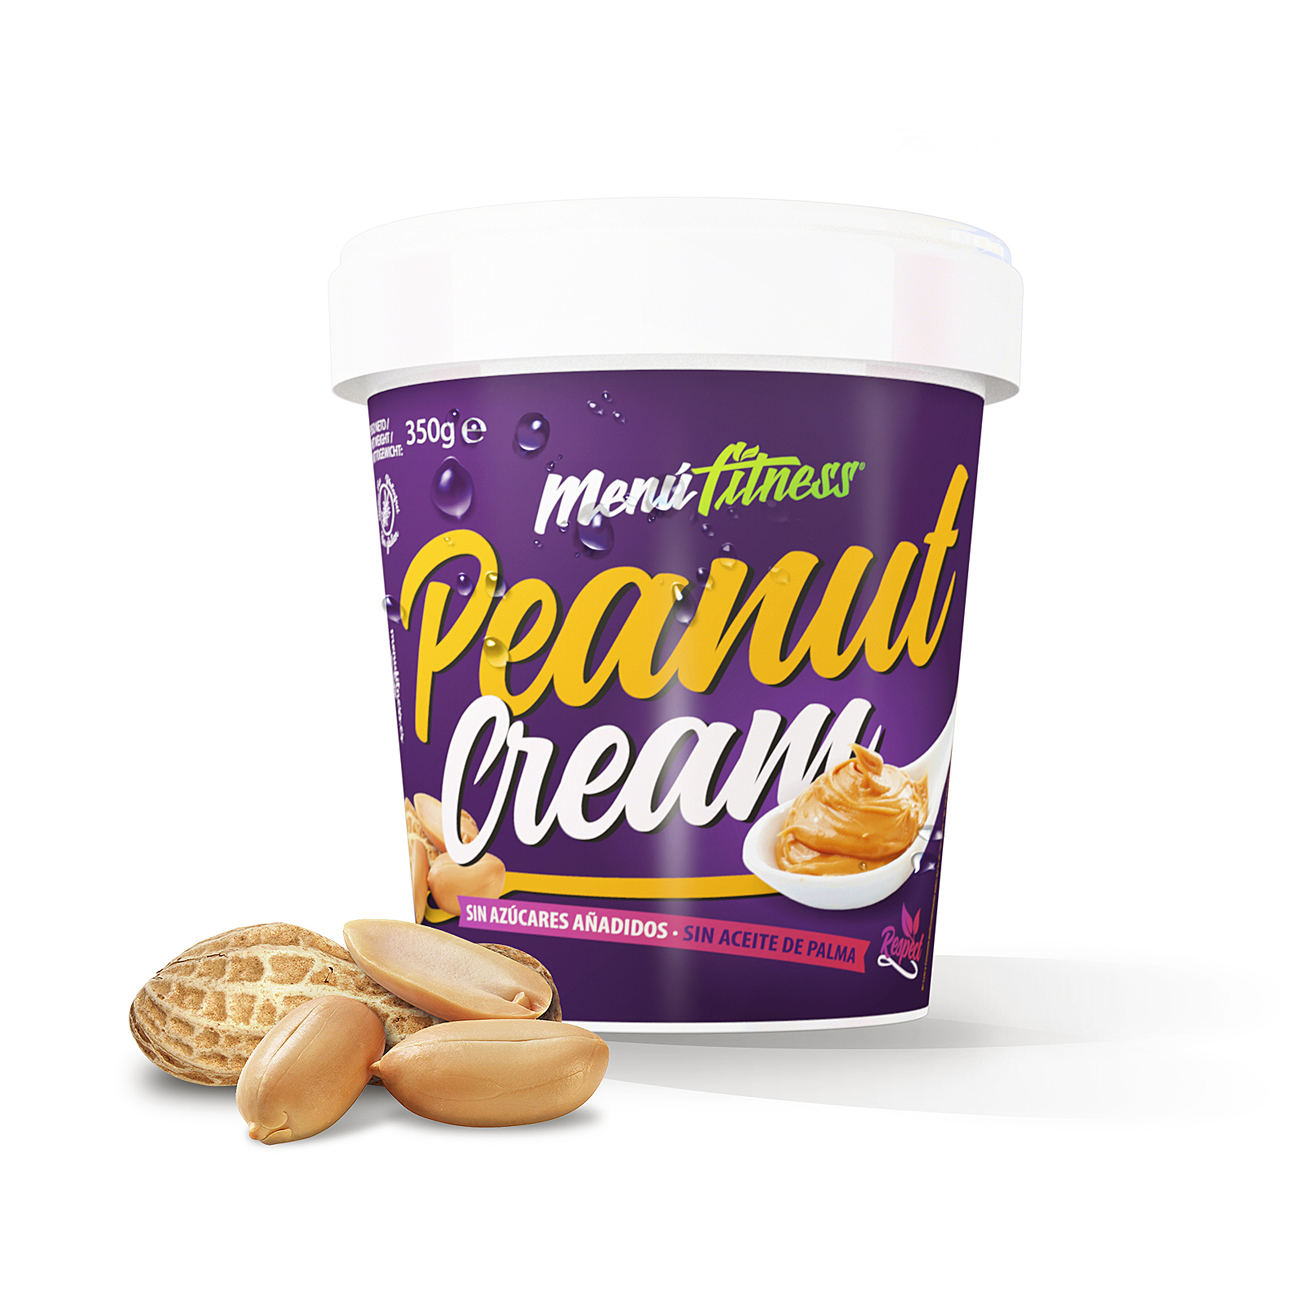 PEANUT CREAM ALIMENTACION Menu Fitness